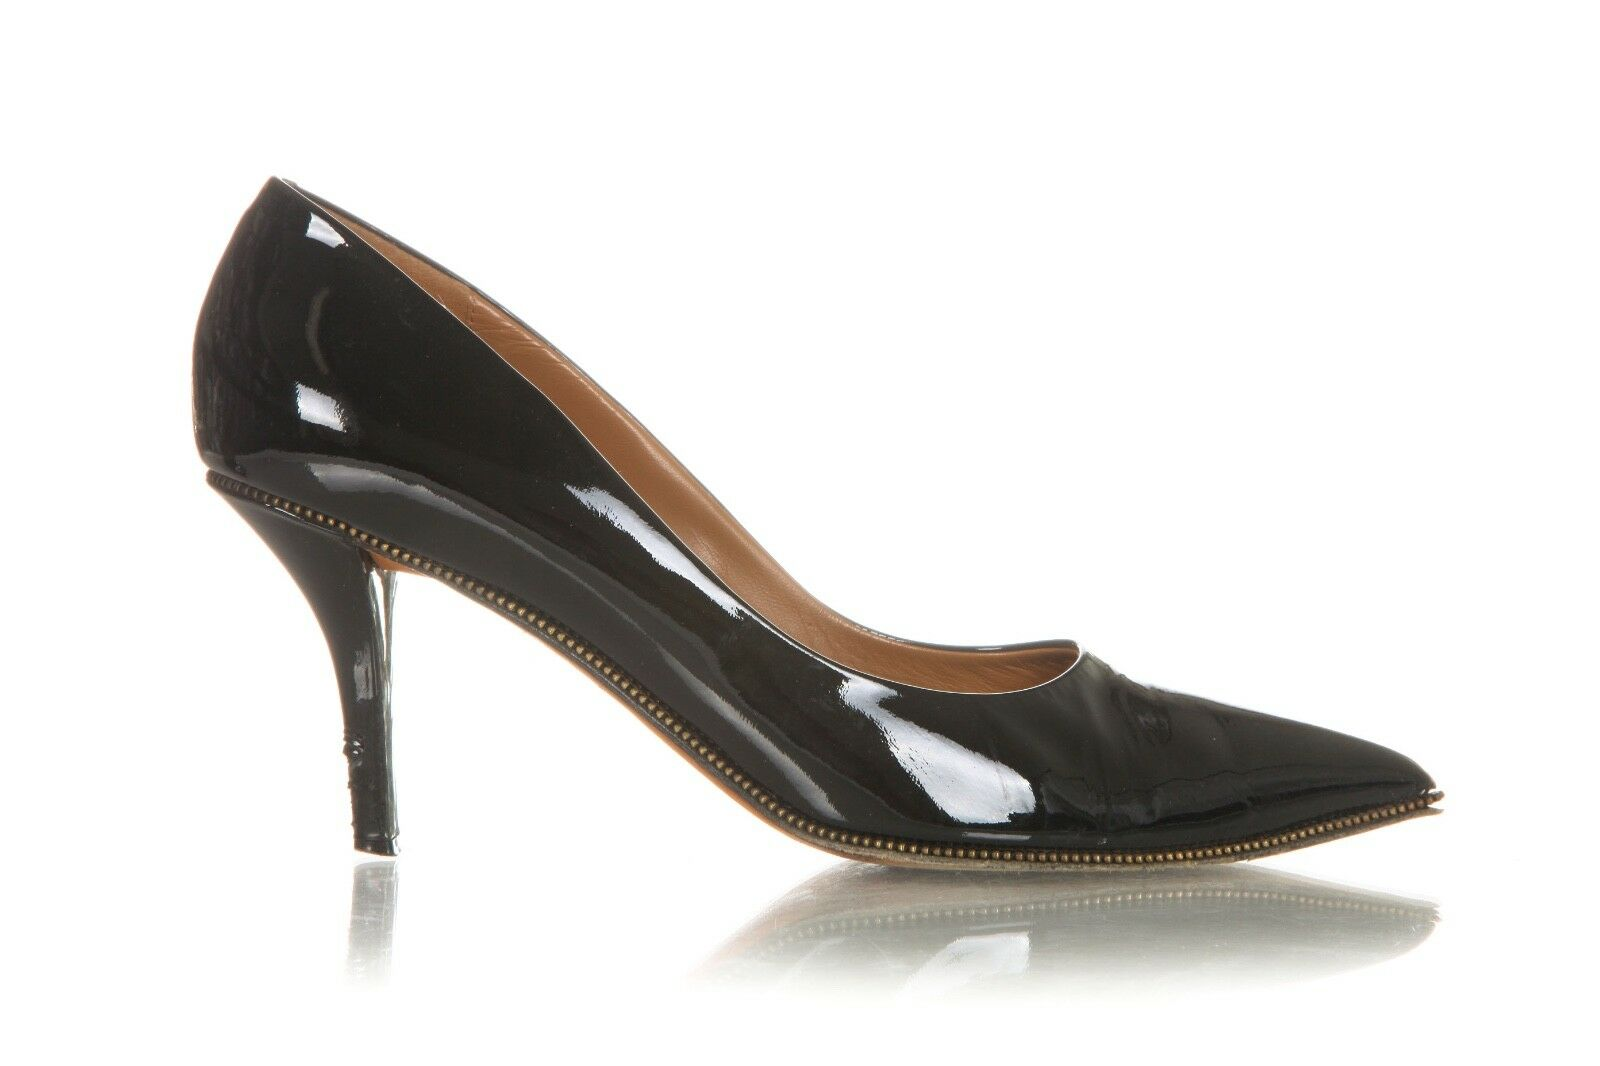 GIVENCHY Pumps 39 8.5 Patent Leather Black Shiny Stiletto Heels